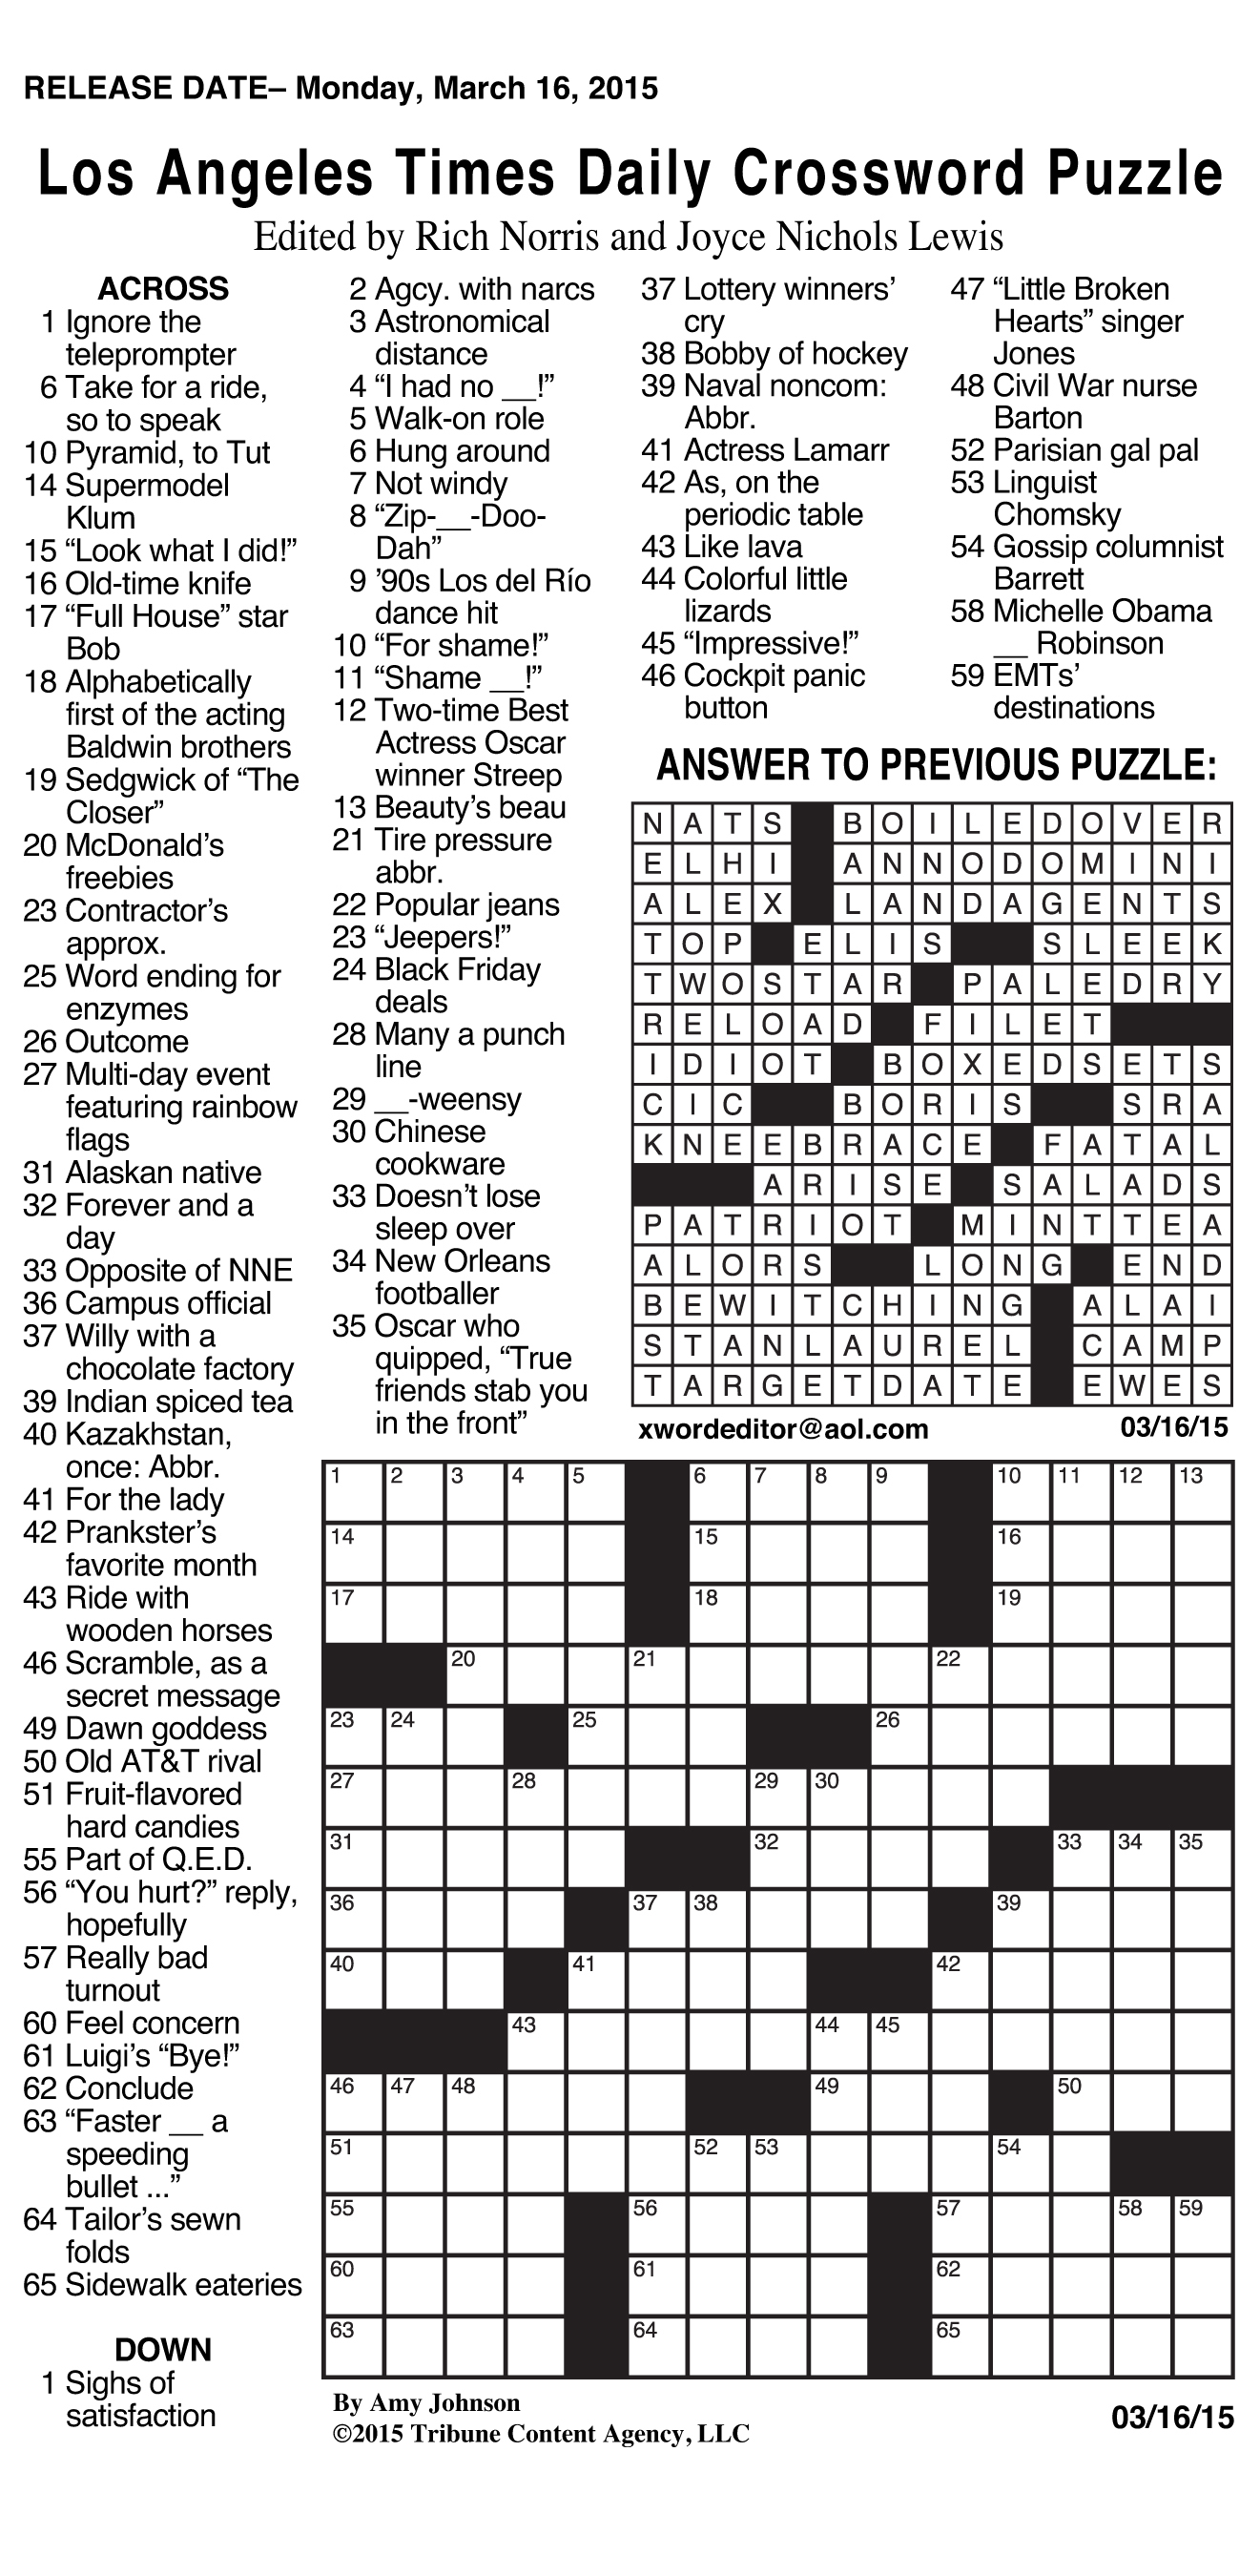 Sample Of Los Angeles Times Daily Crossword Puzzle | Tribune Content - Usa Today Printable Crossword Puzzles 2015